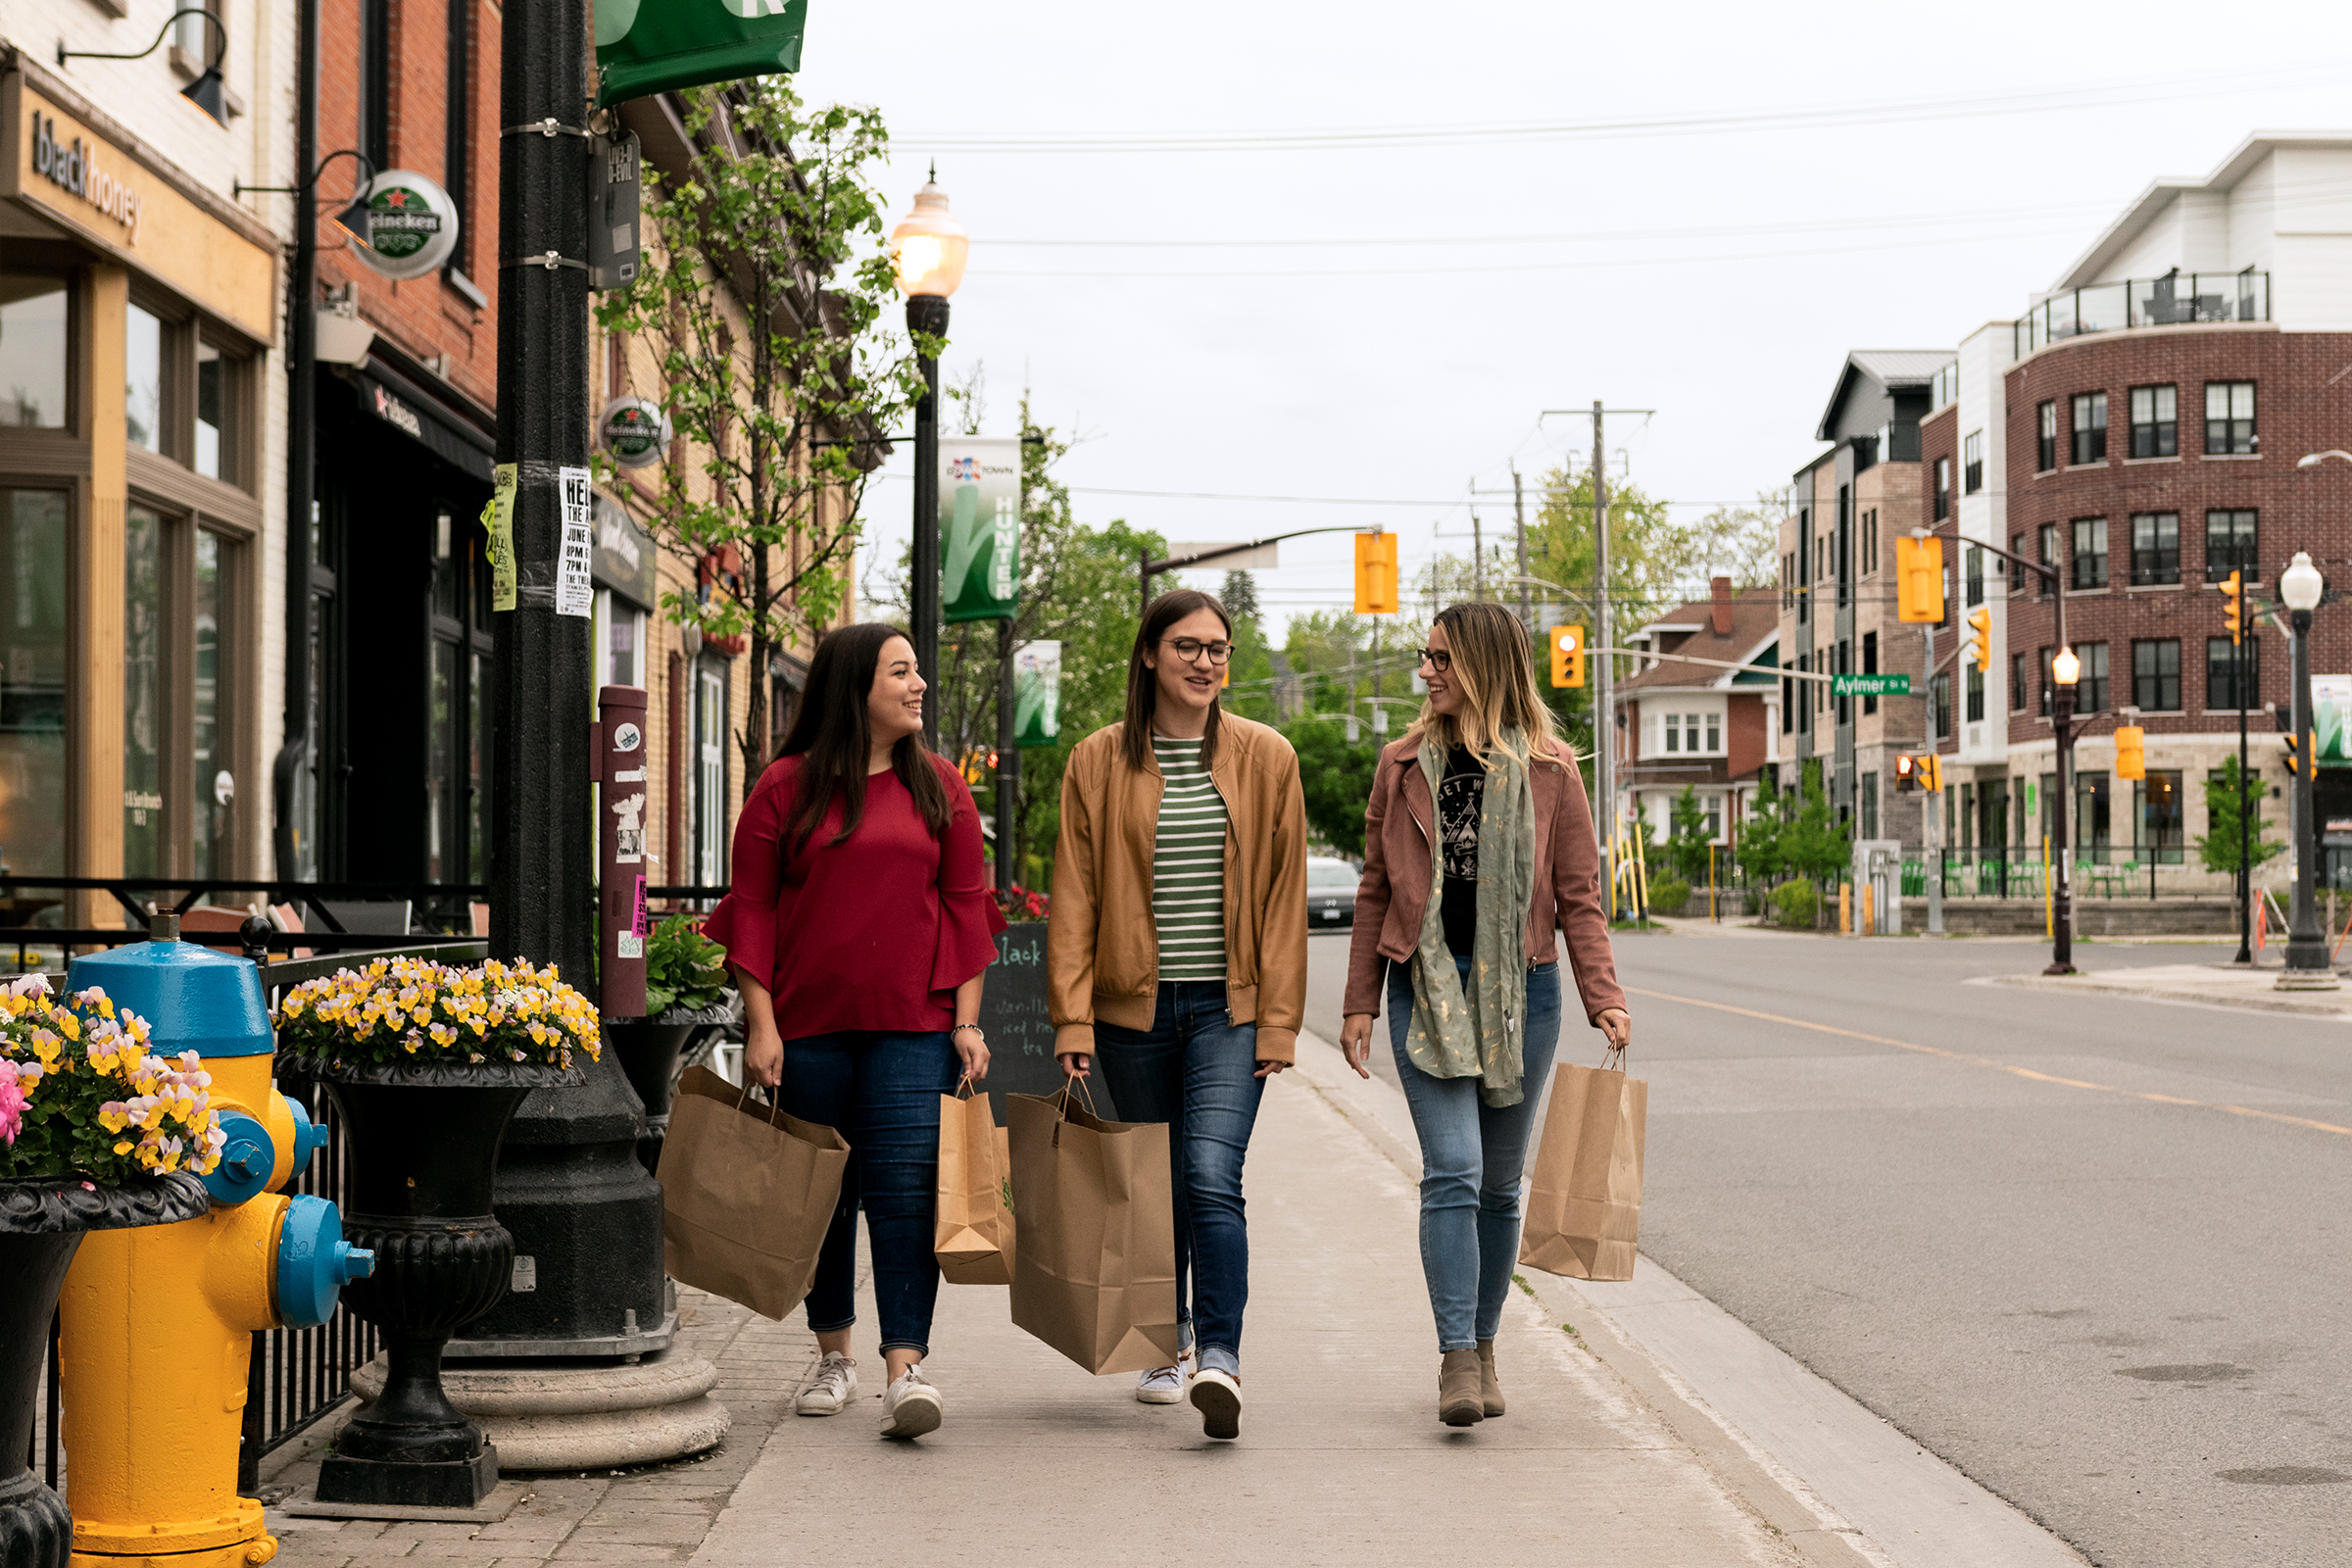 (Left to right) Aldana Casado, Kate Storen, and Chelsea Boyd pose for the launch of Open Late 'Til Eight, a new shopping initiative in Downtown Peterborough.